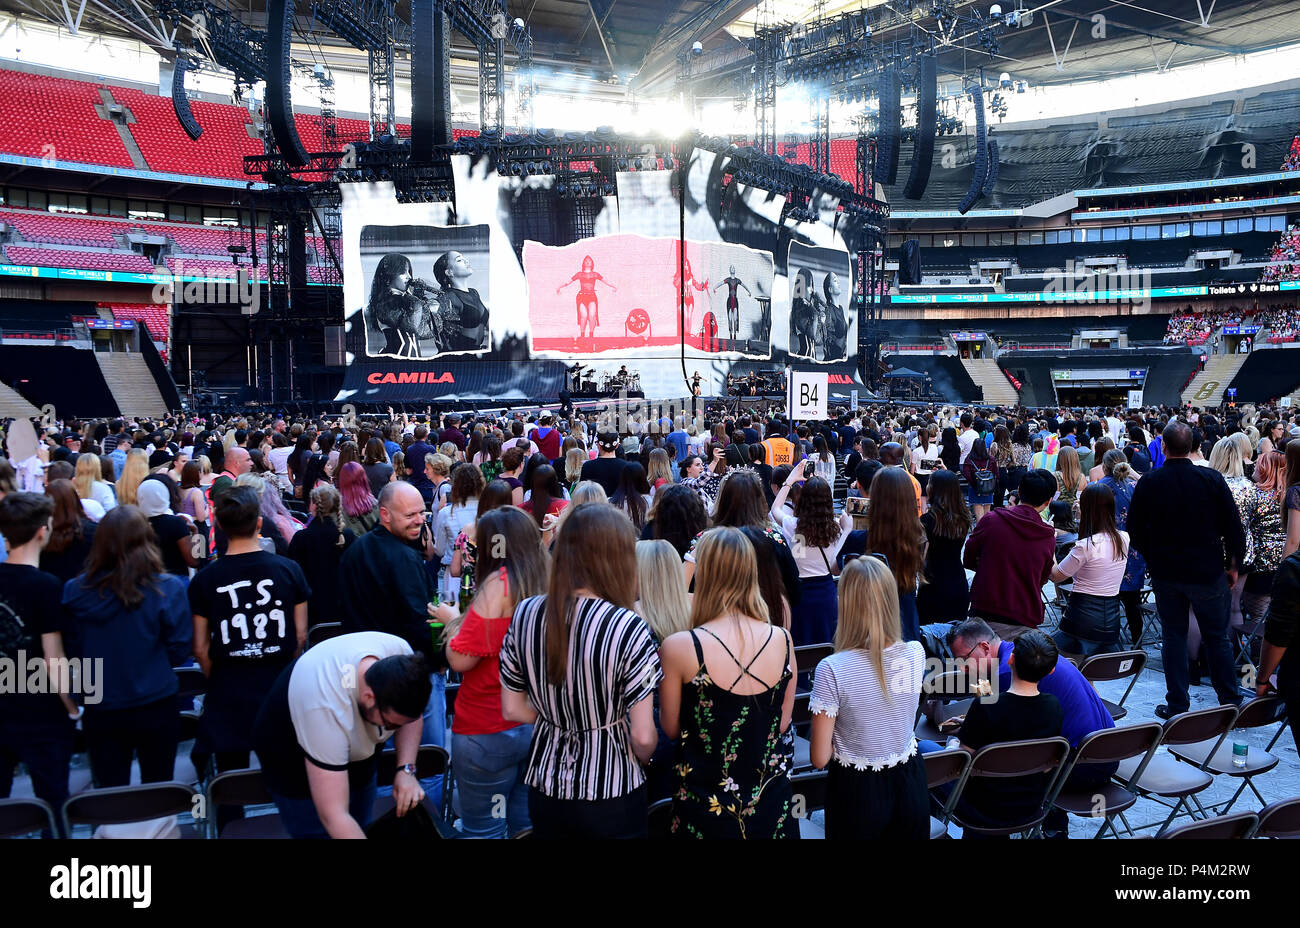 Fans Watch Camila Cabello Performing On Stage During The Taylor Swift Reputation Stadium Tour At